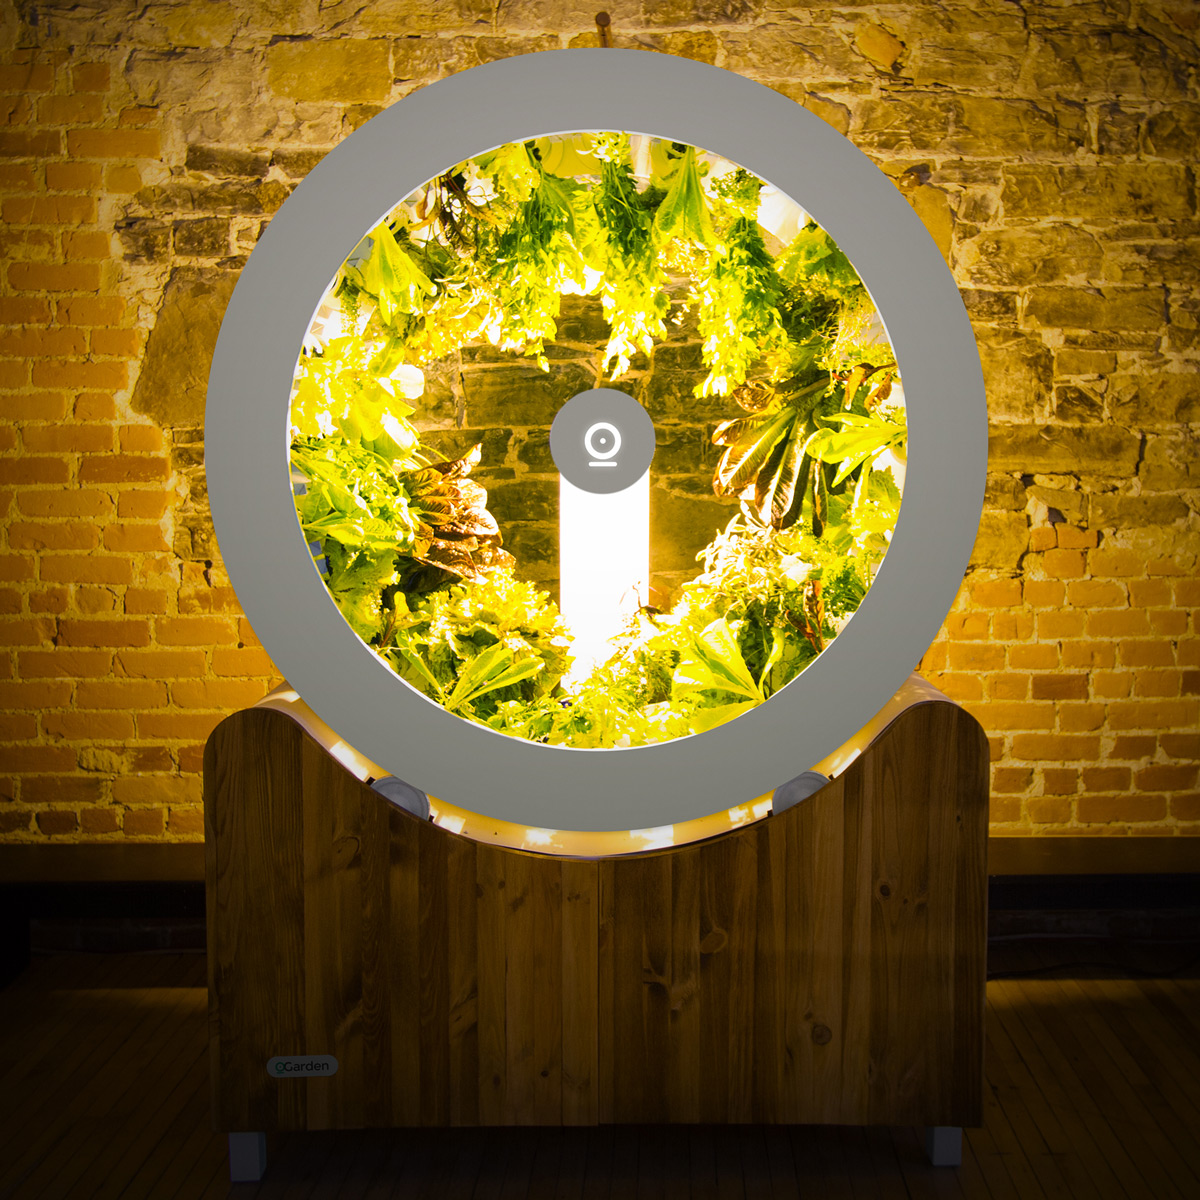 Voici Ogarden Rotating Planter Wheel With Central Light